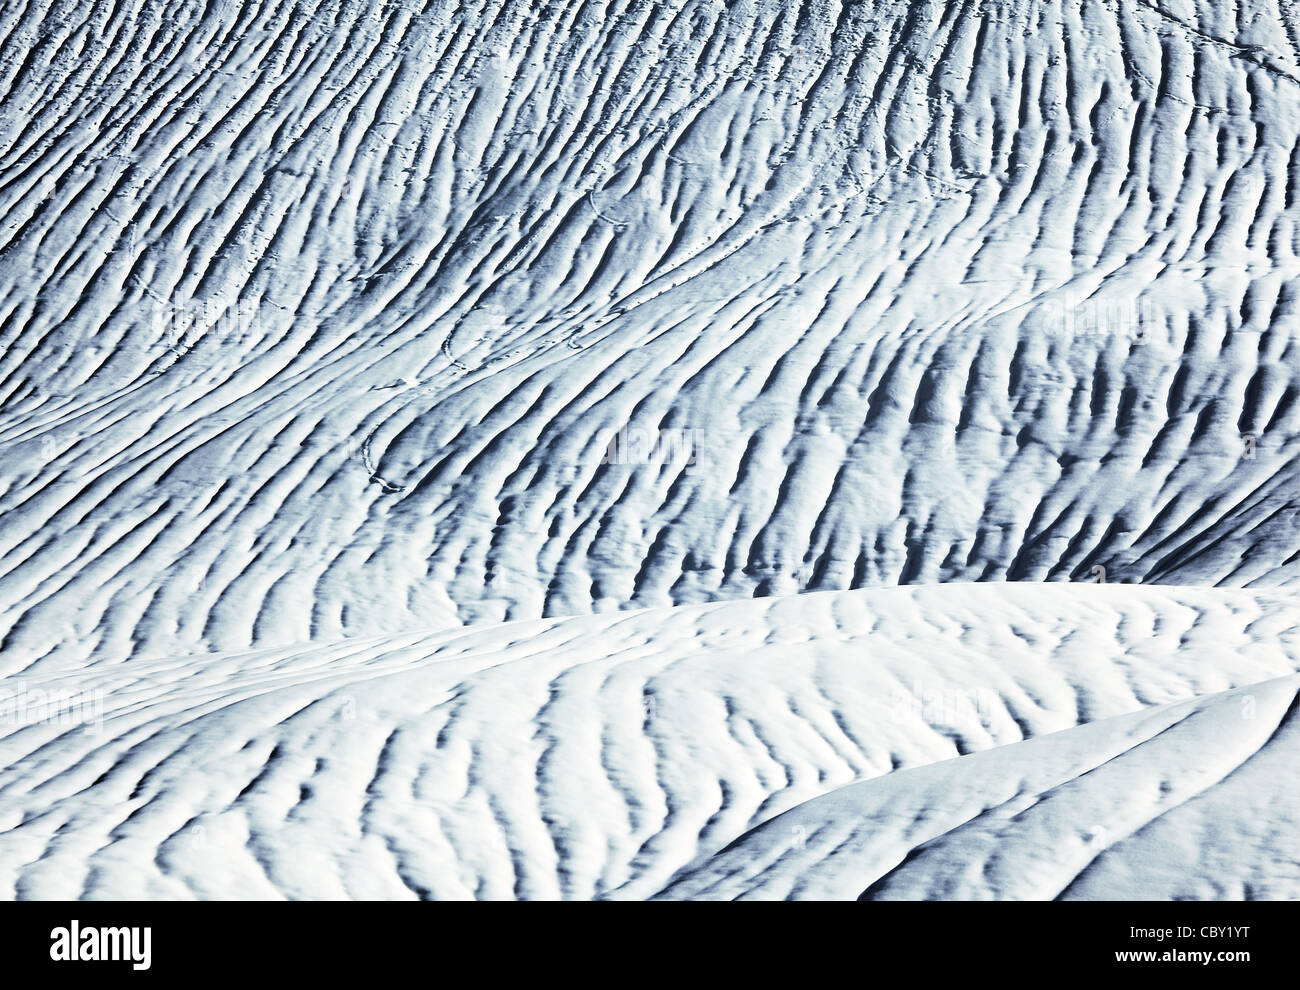 Abstract snow background, texture and pattern of nature - Stock Image